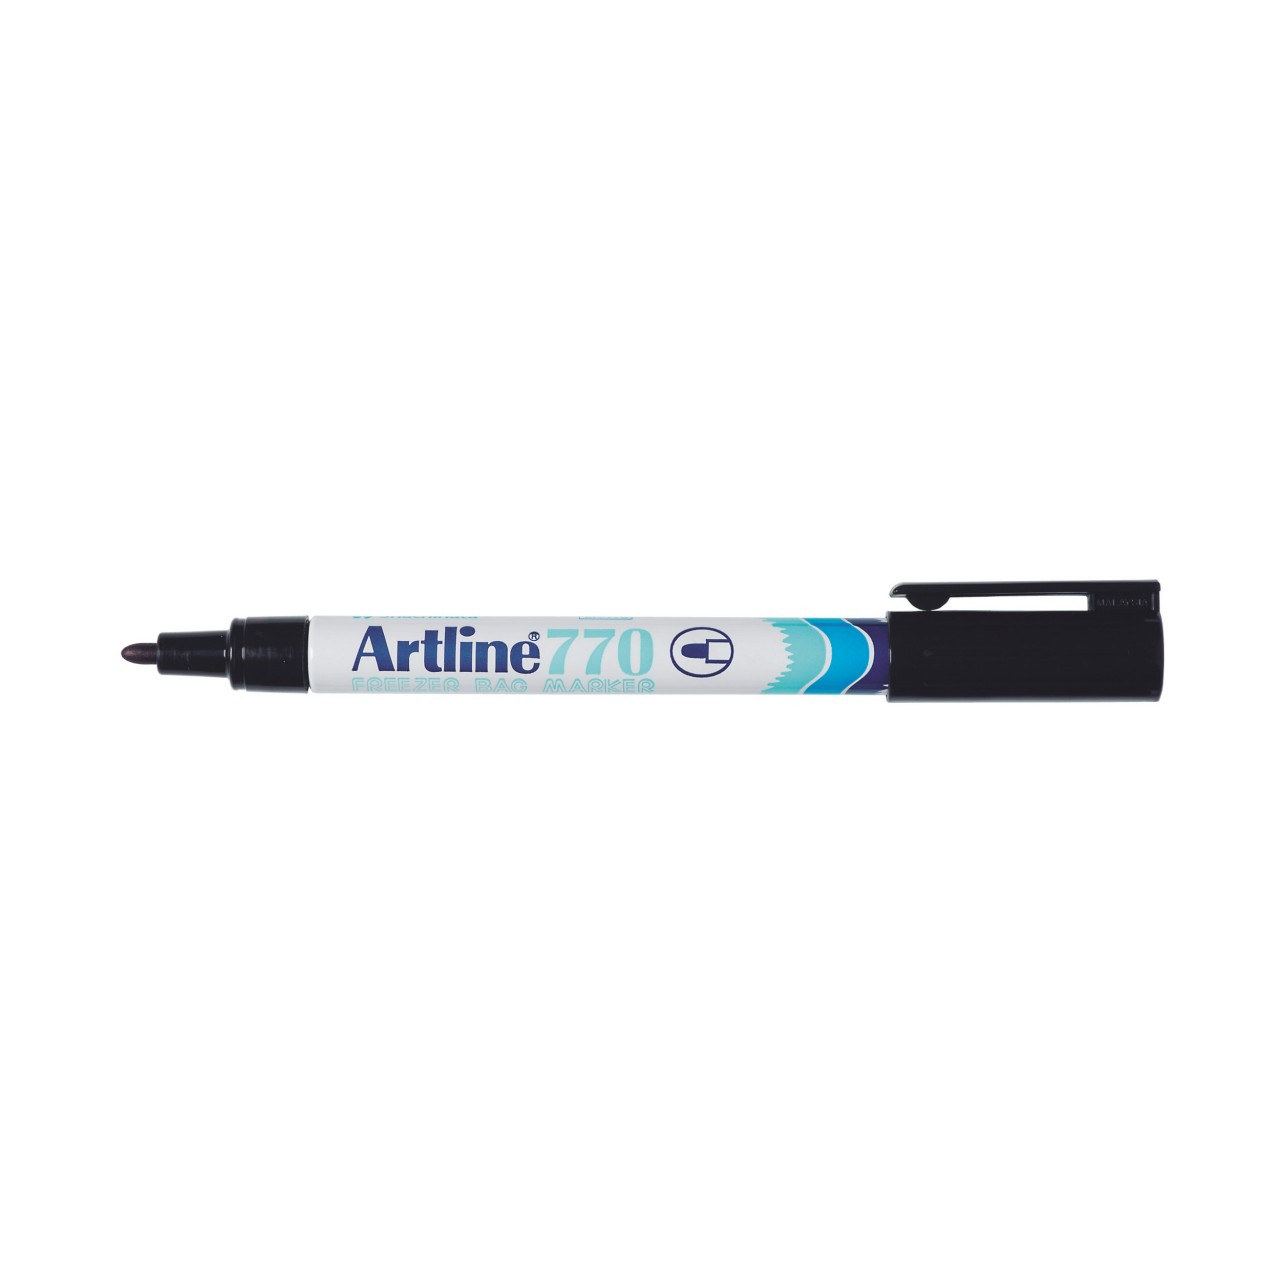 Artline 770 Freezer Bag Marker Black 1.0Mm Bullet Nib (Bx12)